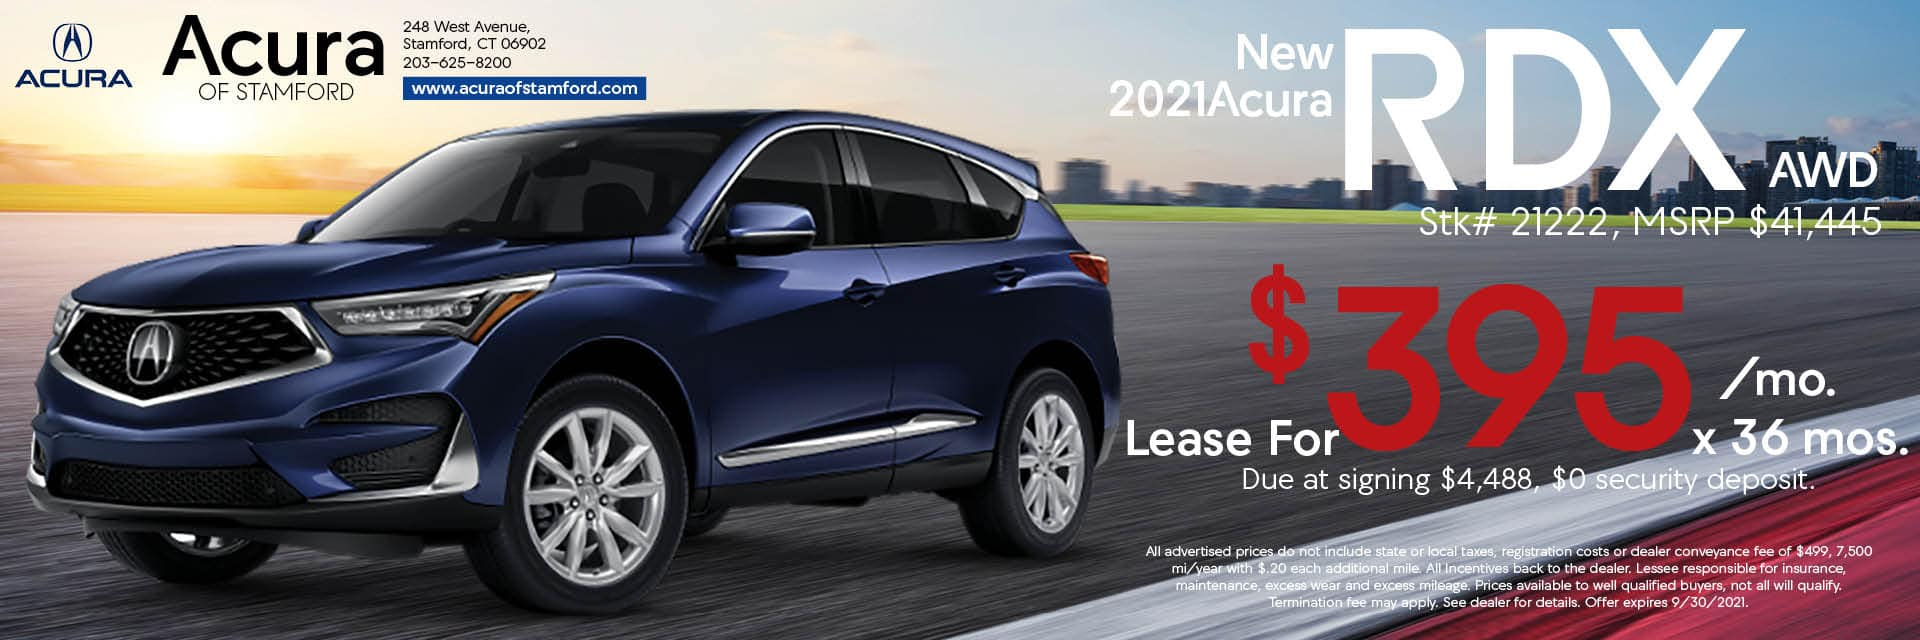 2021 Acura RDX Lease Offer | Acura of Stamford